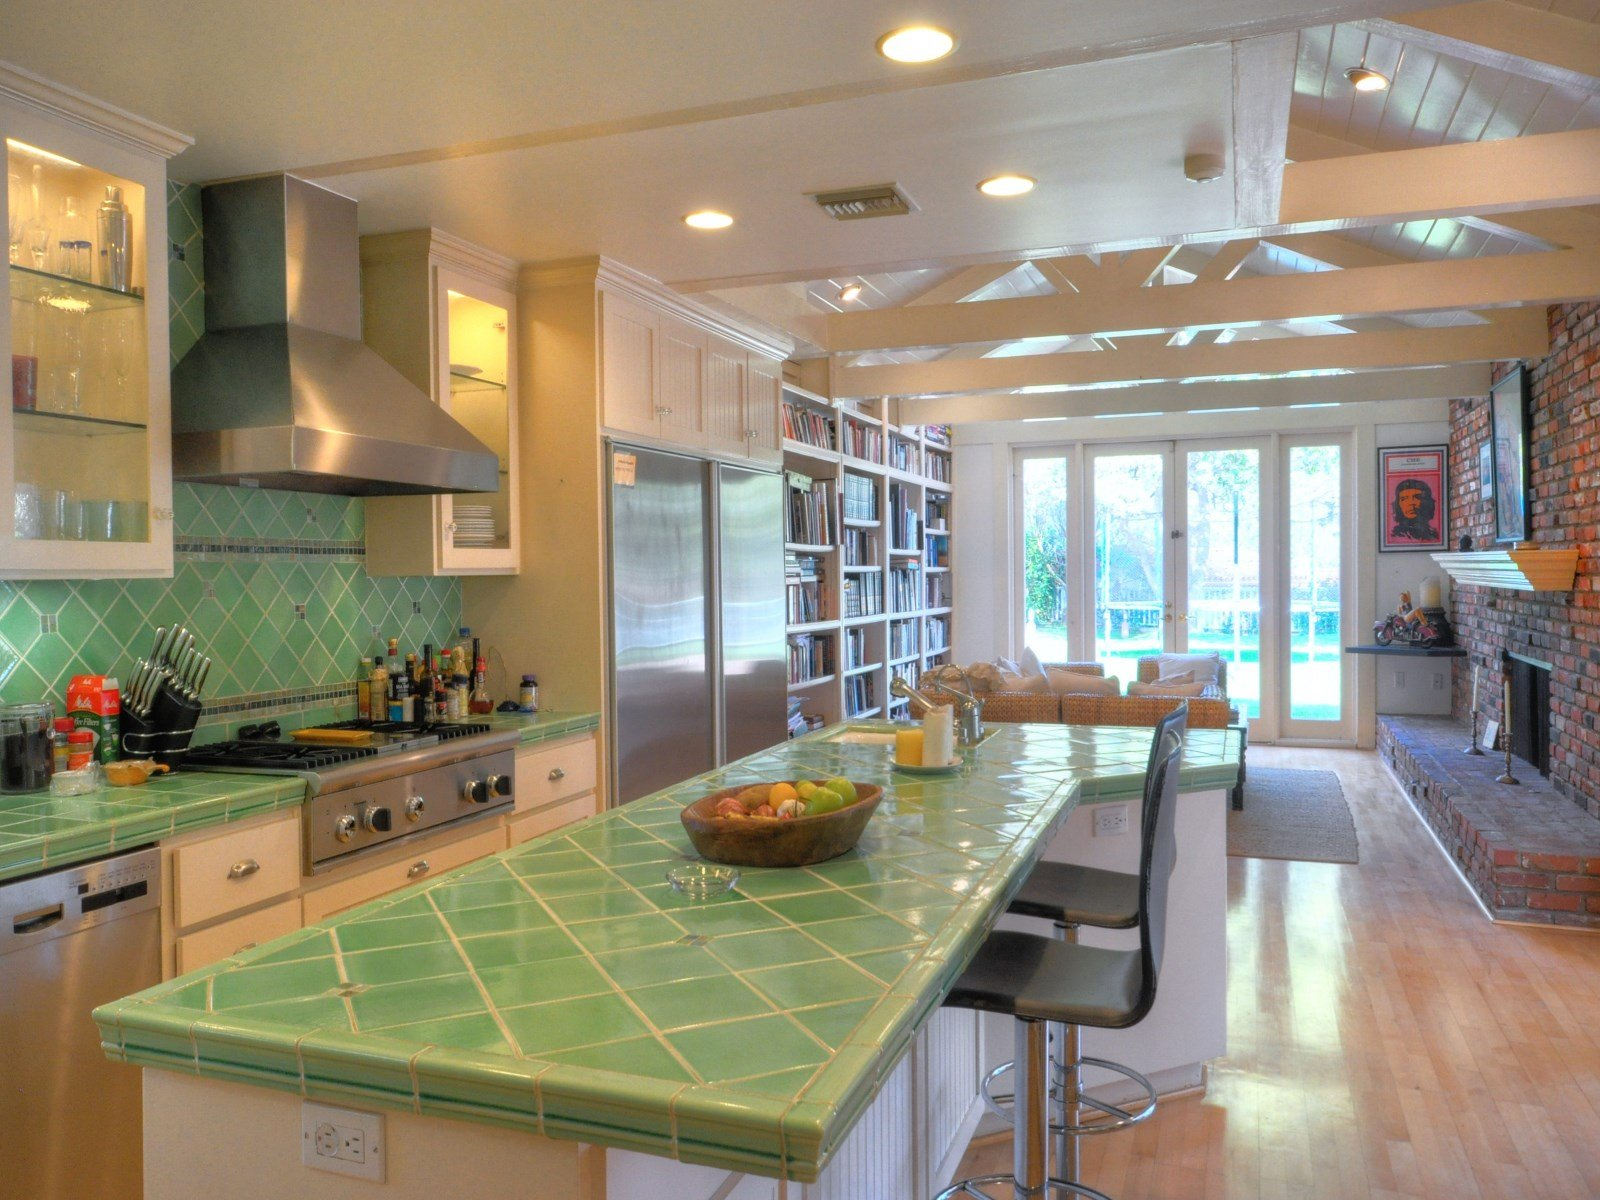 Kitchen in Sean Penn's home for sale in Malibu CA